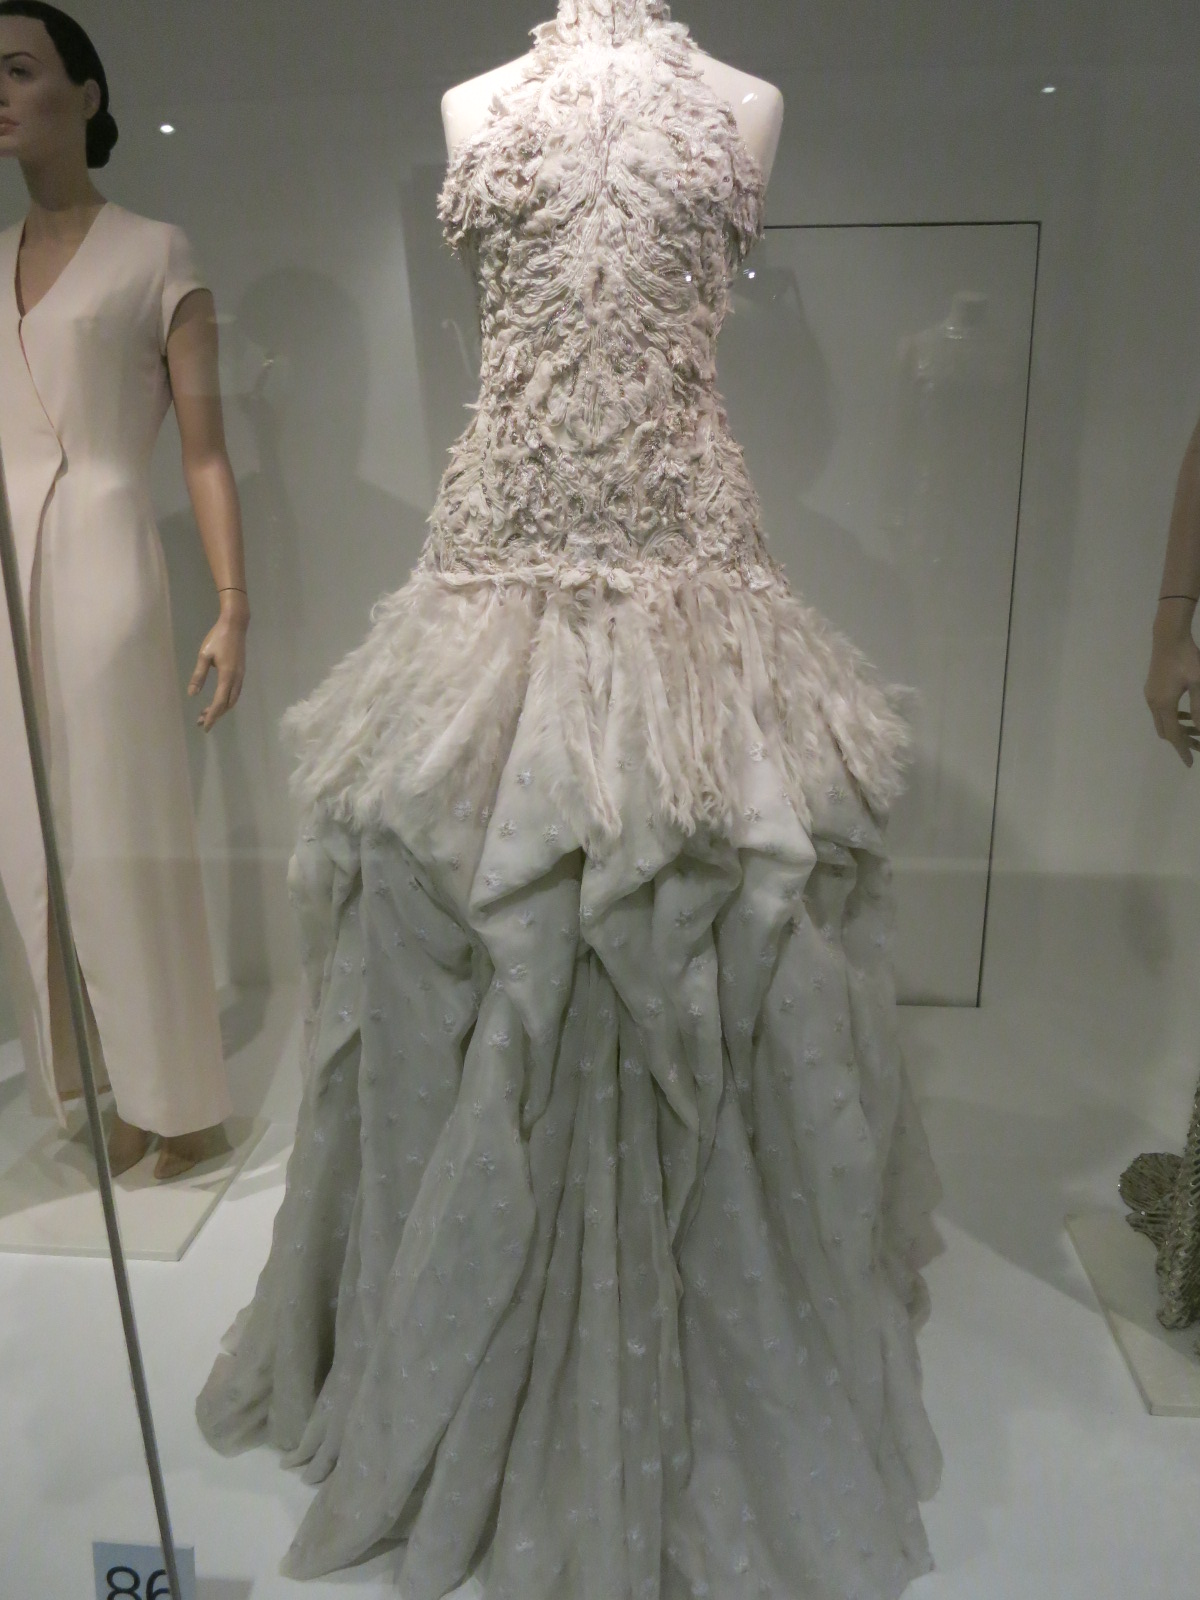 'Dress of the Year' Bath Fashion Museum - this gown designed by Sarah Burton for Alexander McQueen was the 'Dress of the Year' in 2011